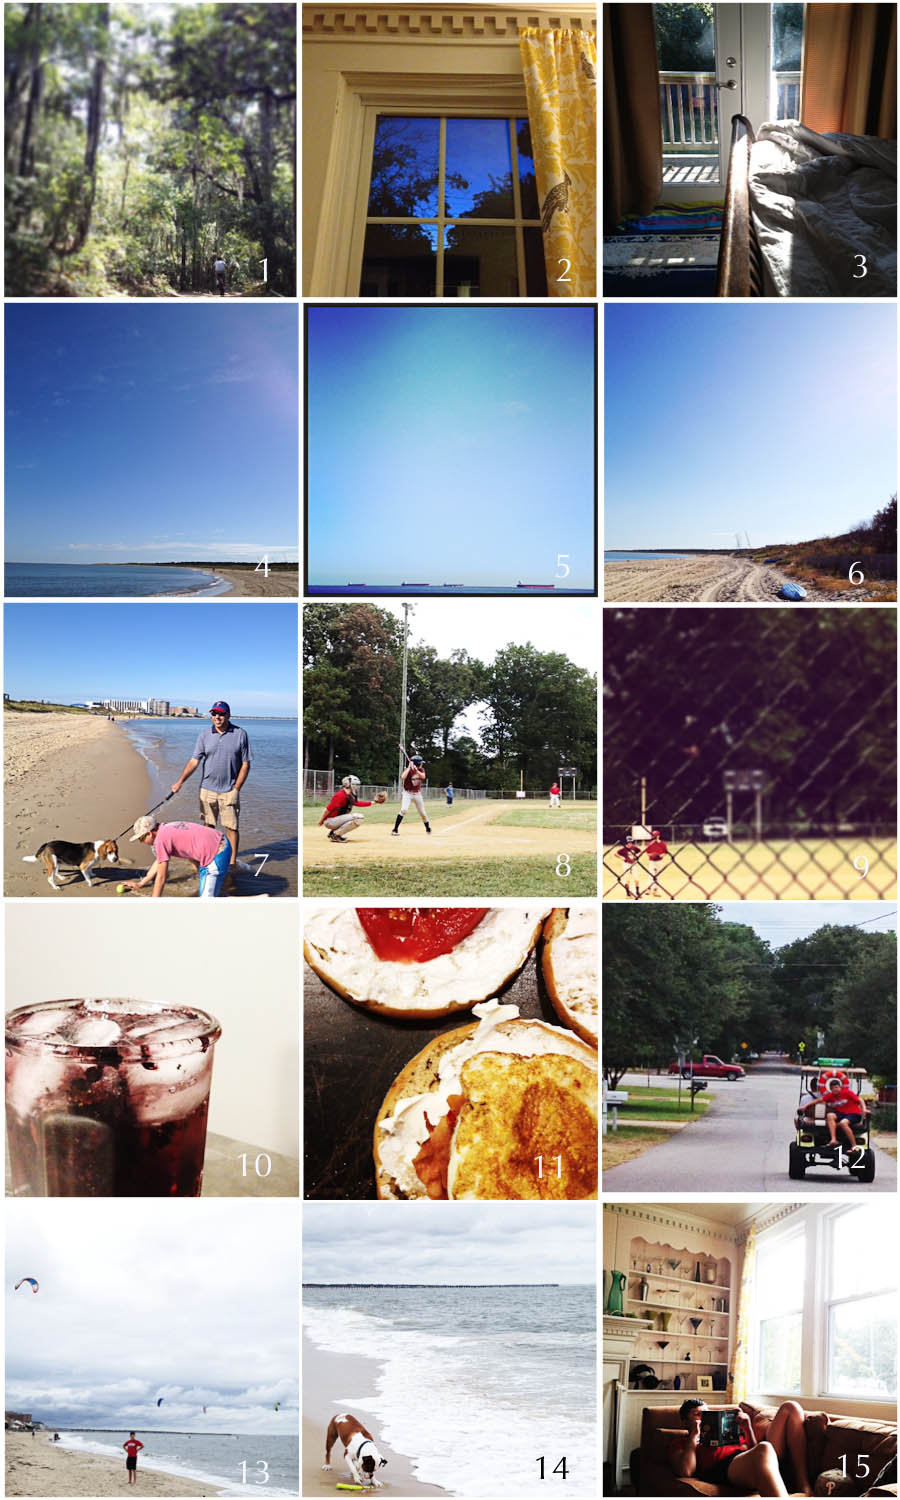 1. Friday hike | 2. Night light | 3. Day light | 4. First Landing | 5. In a row | 6. Autumn at the Beach | 7. Lucy meets the water  | 8. First at bat | 9. Making it matter | 10. Cocktail | 11. Breakfast sandwich | 12. Sweet ride | 13. Cal | 14. Buster | 15. Easy Sunday